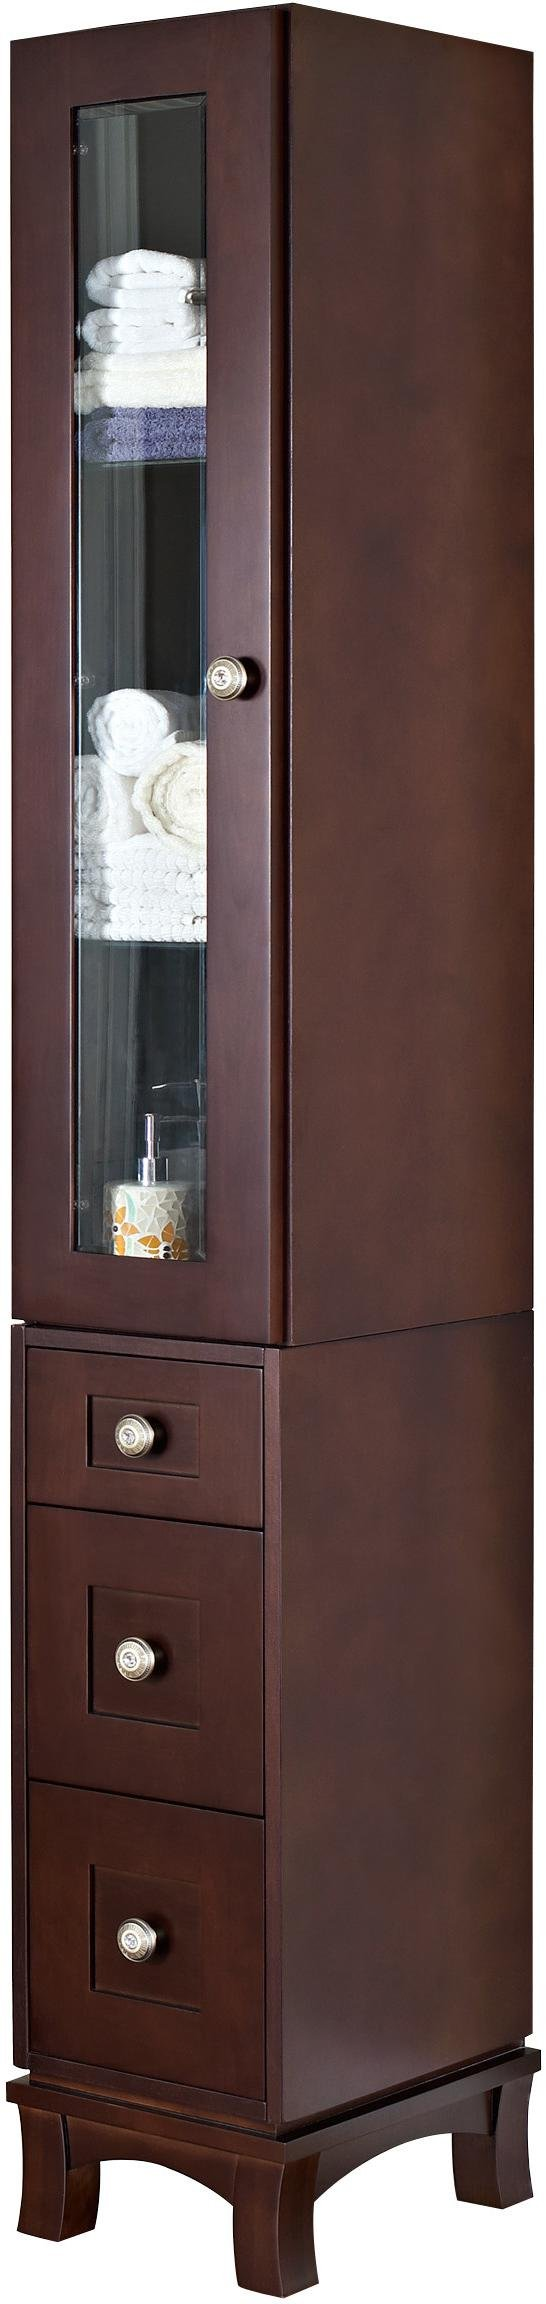 American Imaginations AI-1146 12-in. W Solid Cherry Wood Linen Tower With Soft-close Door And Drawers In Coffee Finish